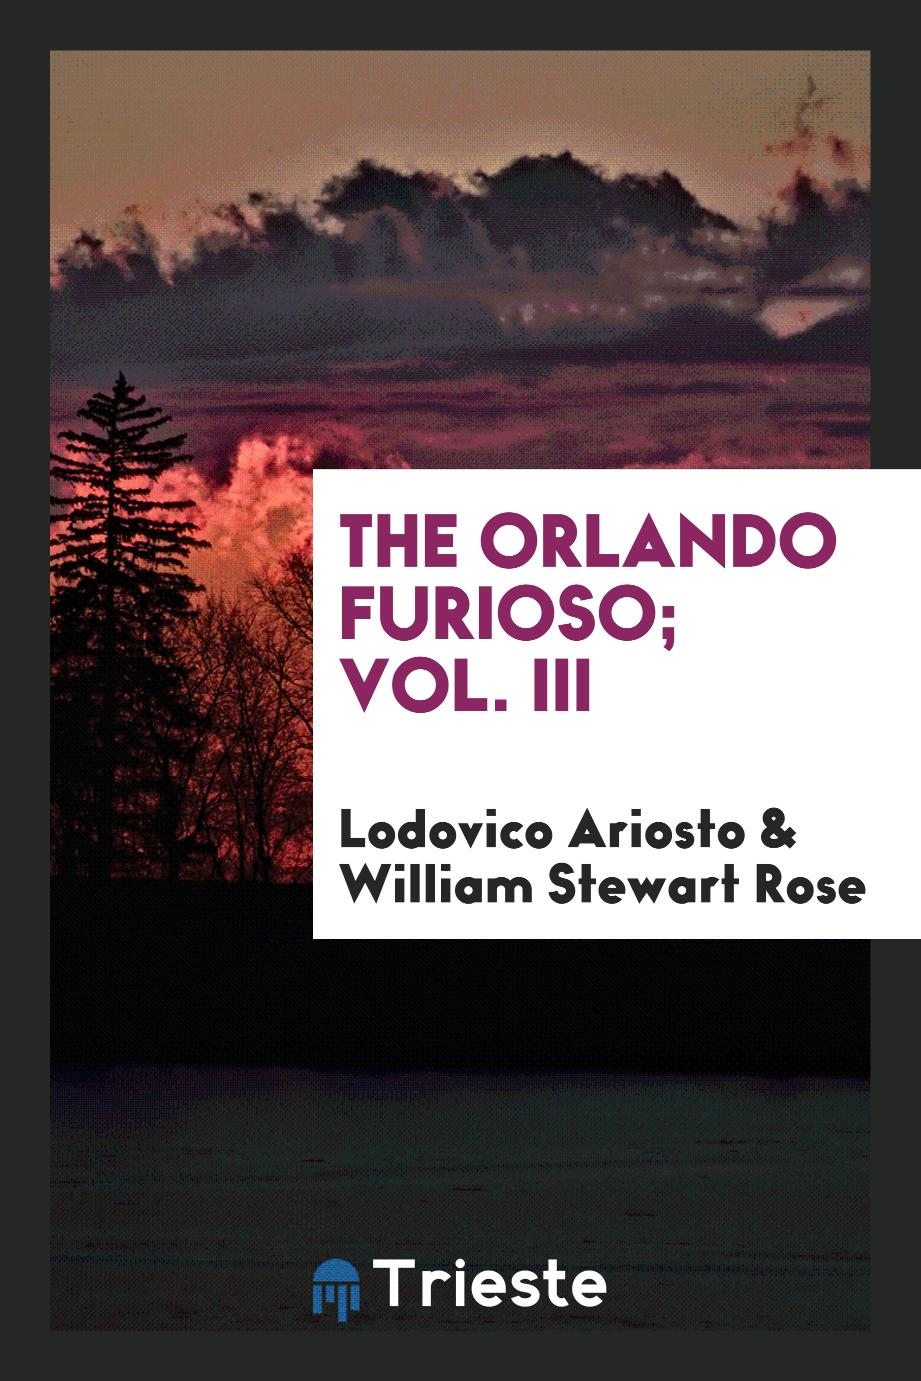 Lodovico Ariosto, William Stewart Rose - The Orlando furioso; Vol. III